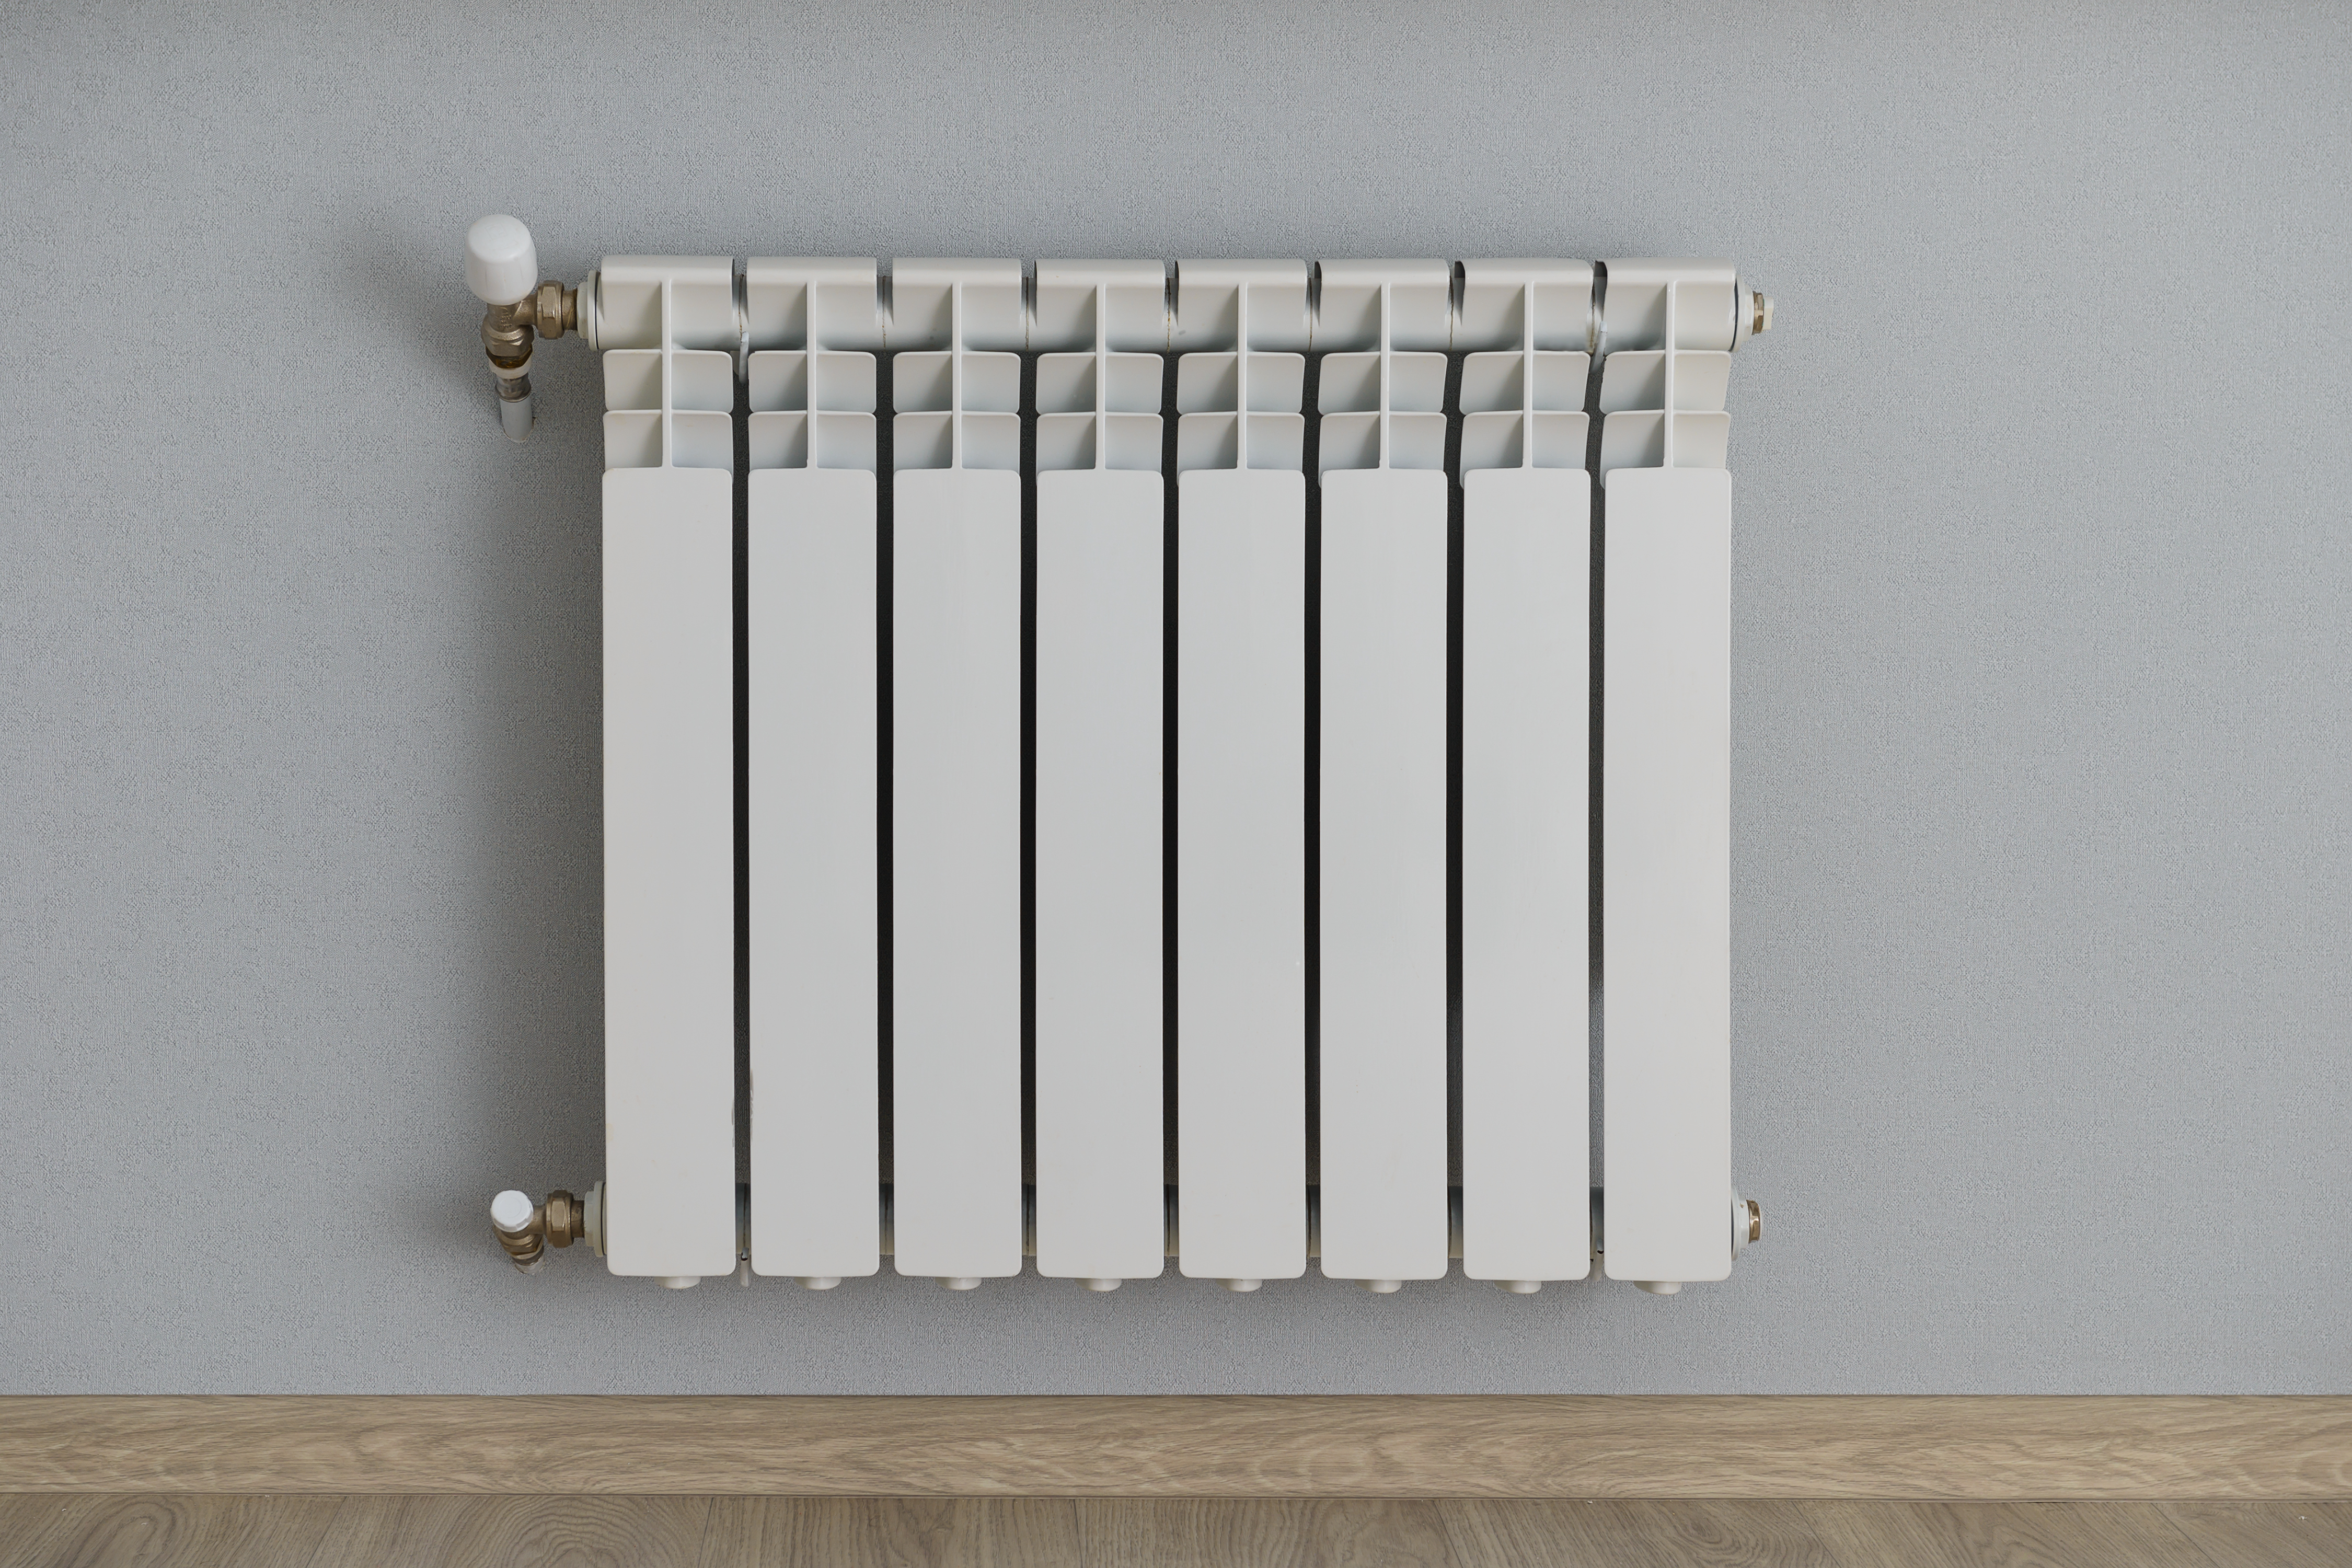 How to Silence Water Baseboard Heaters | Home Guides | SF Gate